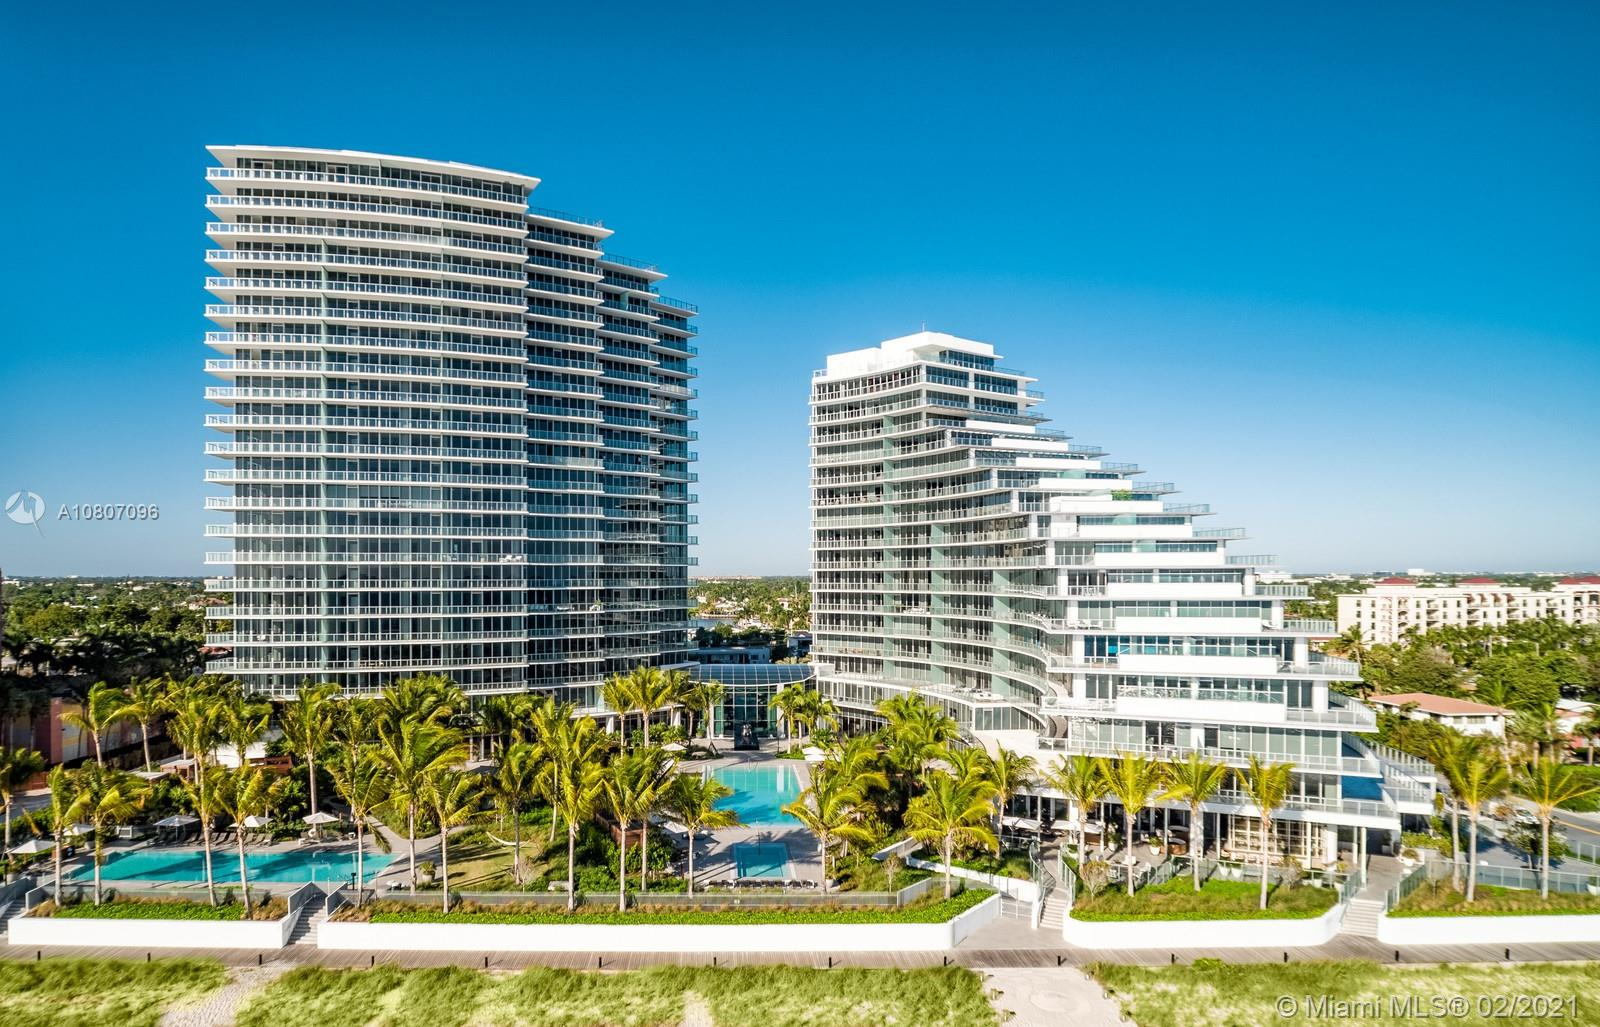 image #1 of property, Auberge Beach Residences, Unit S506